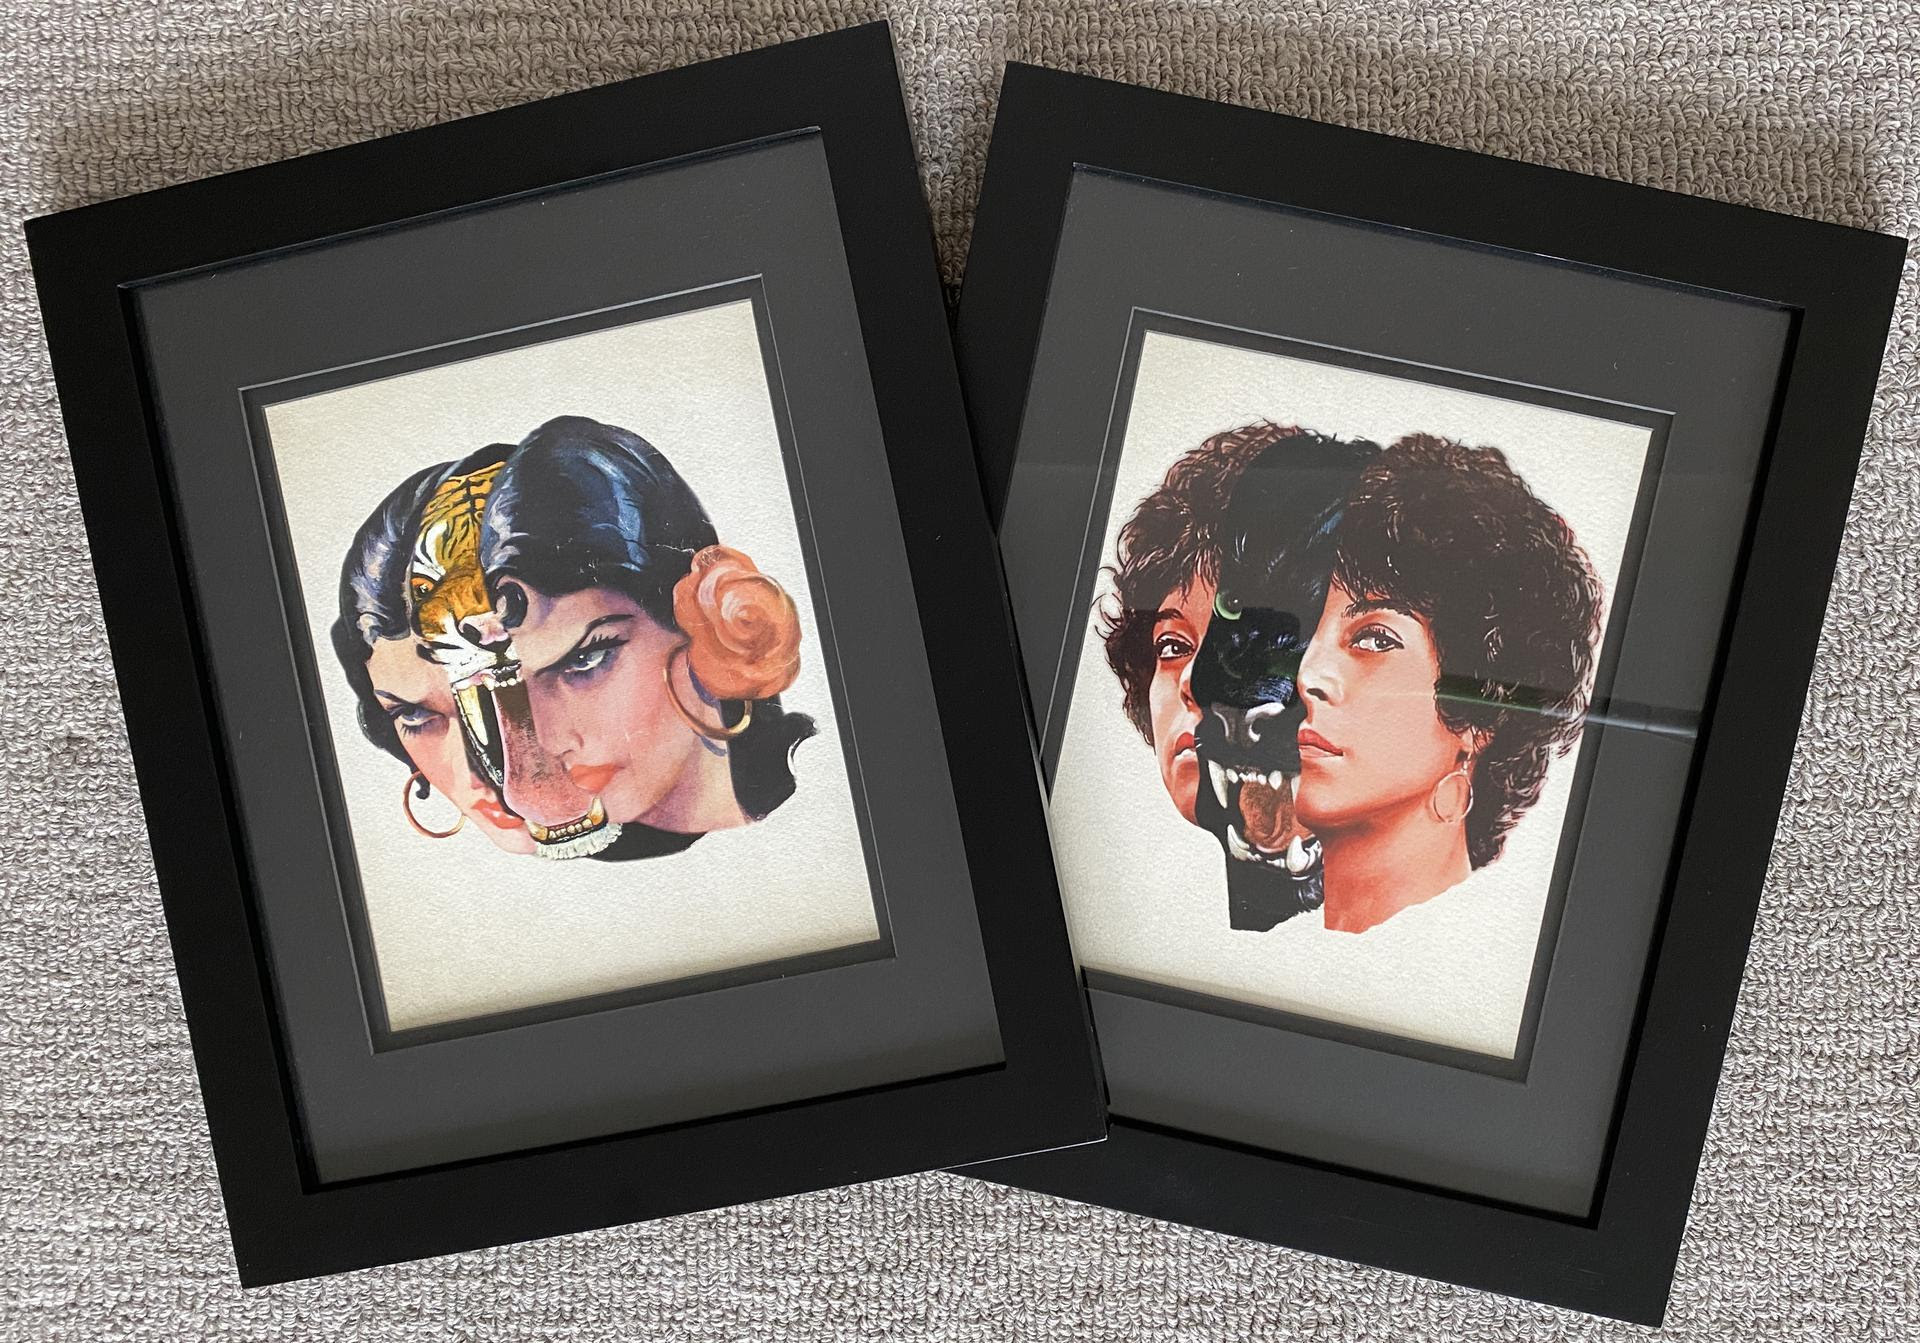 """Moon Patrol's """"Tigre"""" and """"Puma Lady"""" prints in a black frame"""